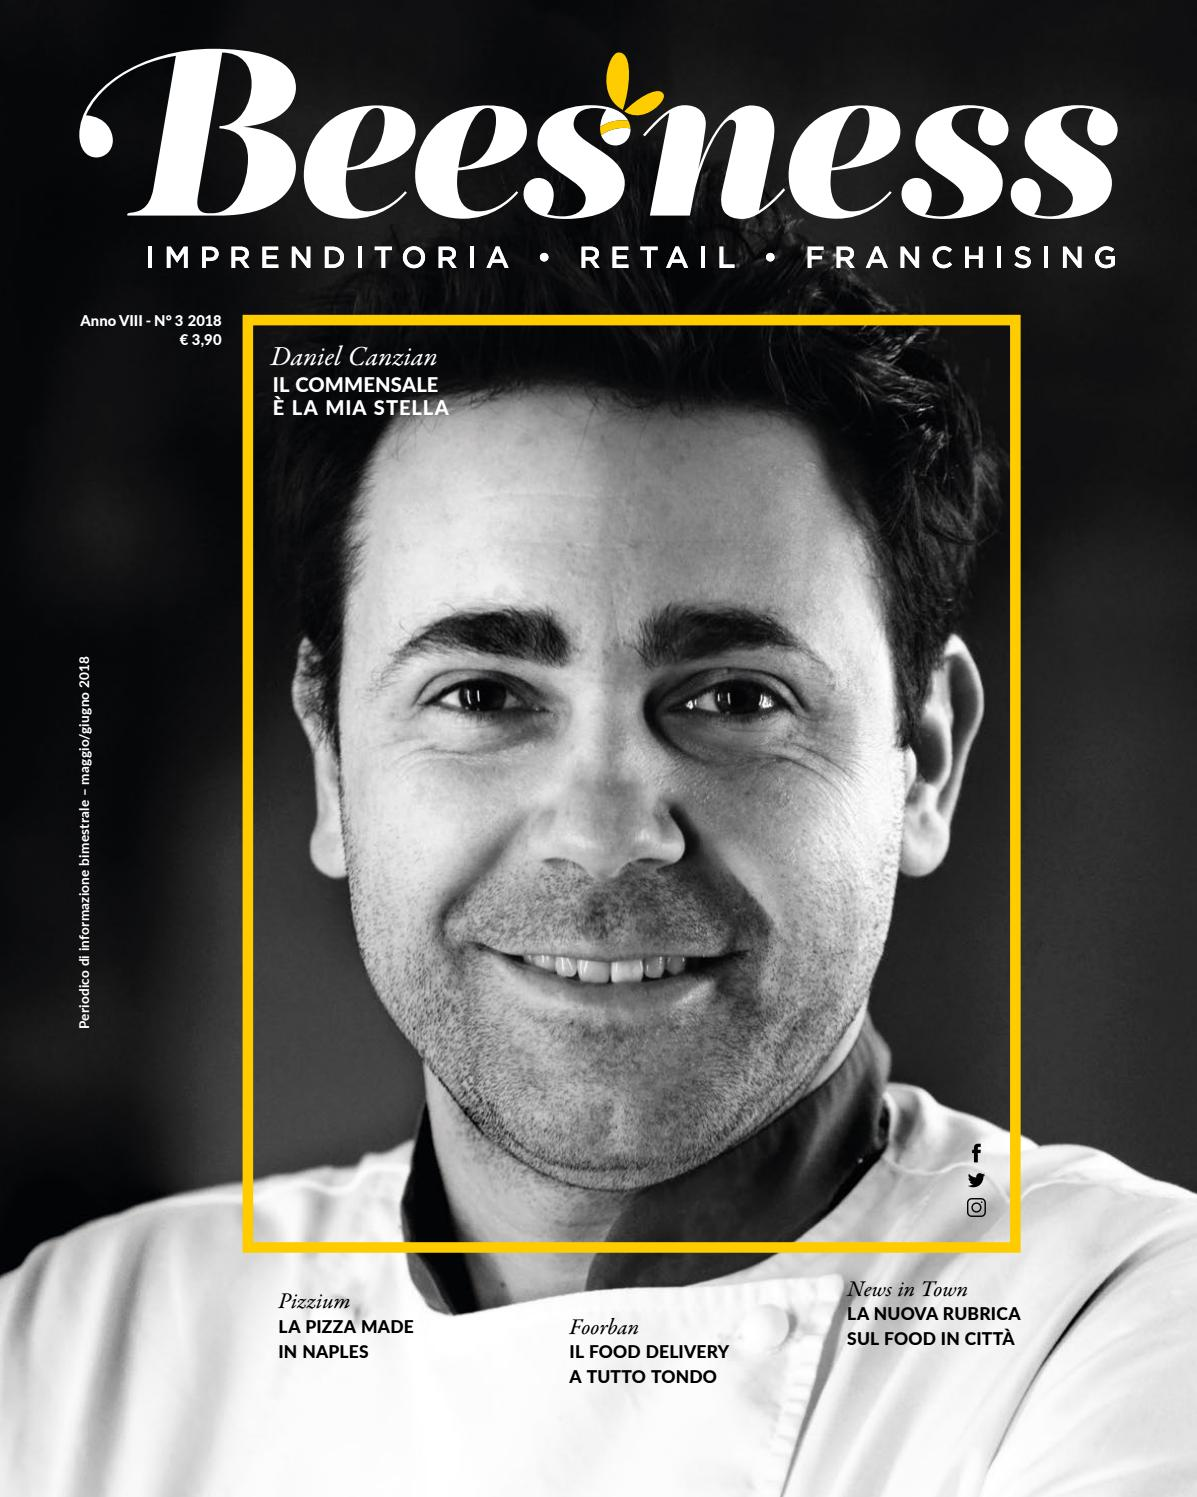 Beesness - Chef Daniel Canzian by Beesness - issuu 5b5c4a2ce61